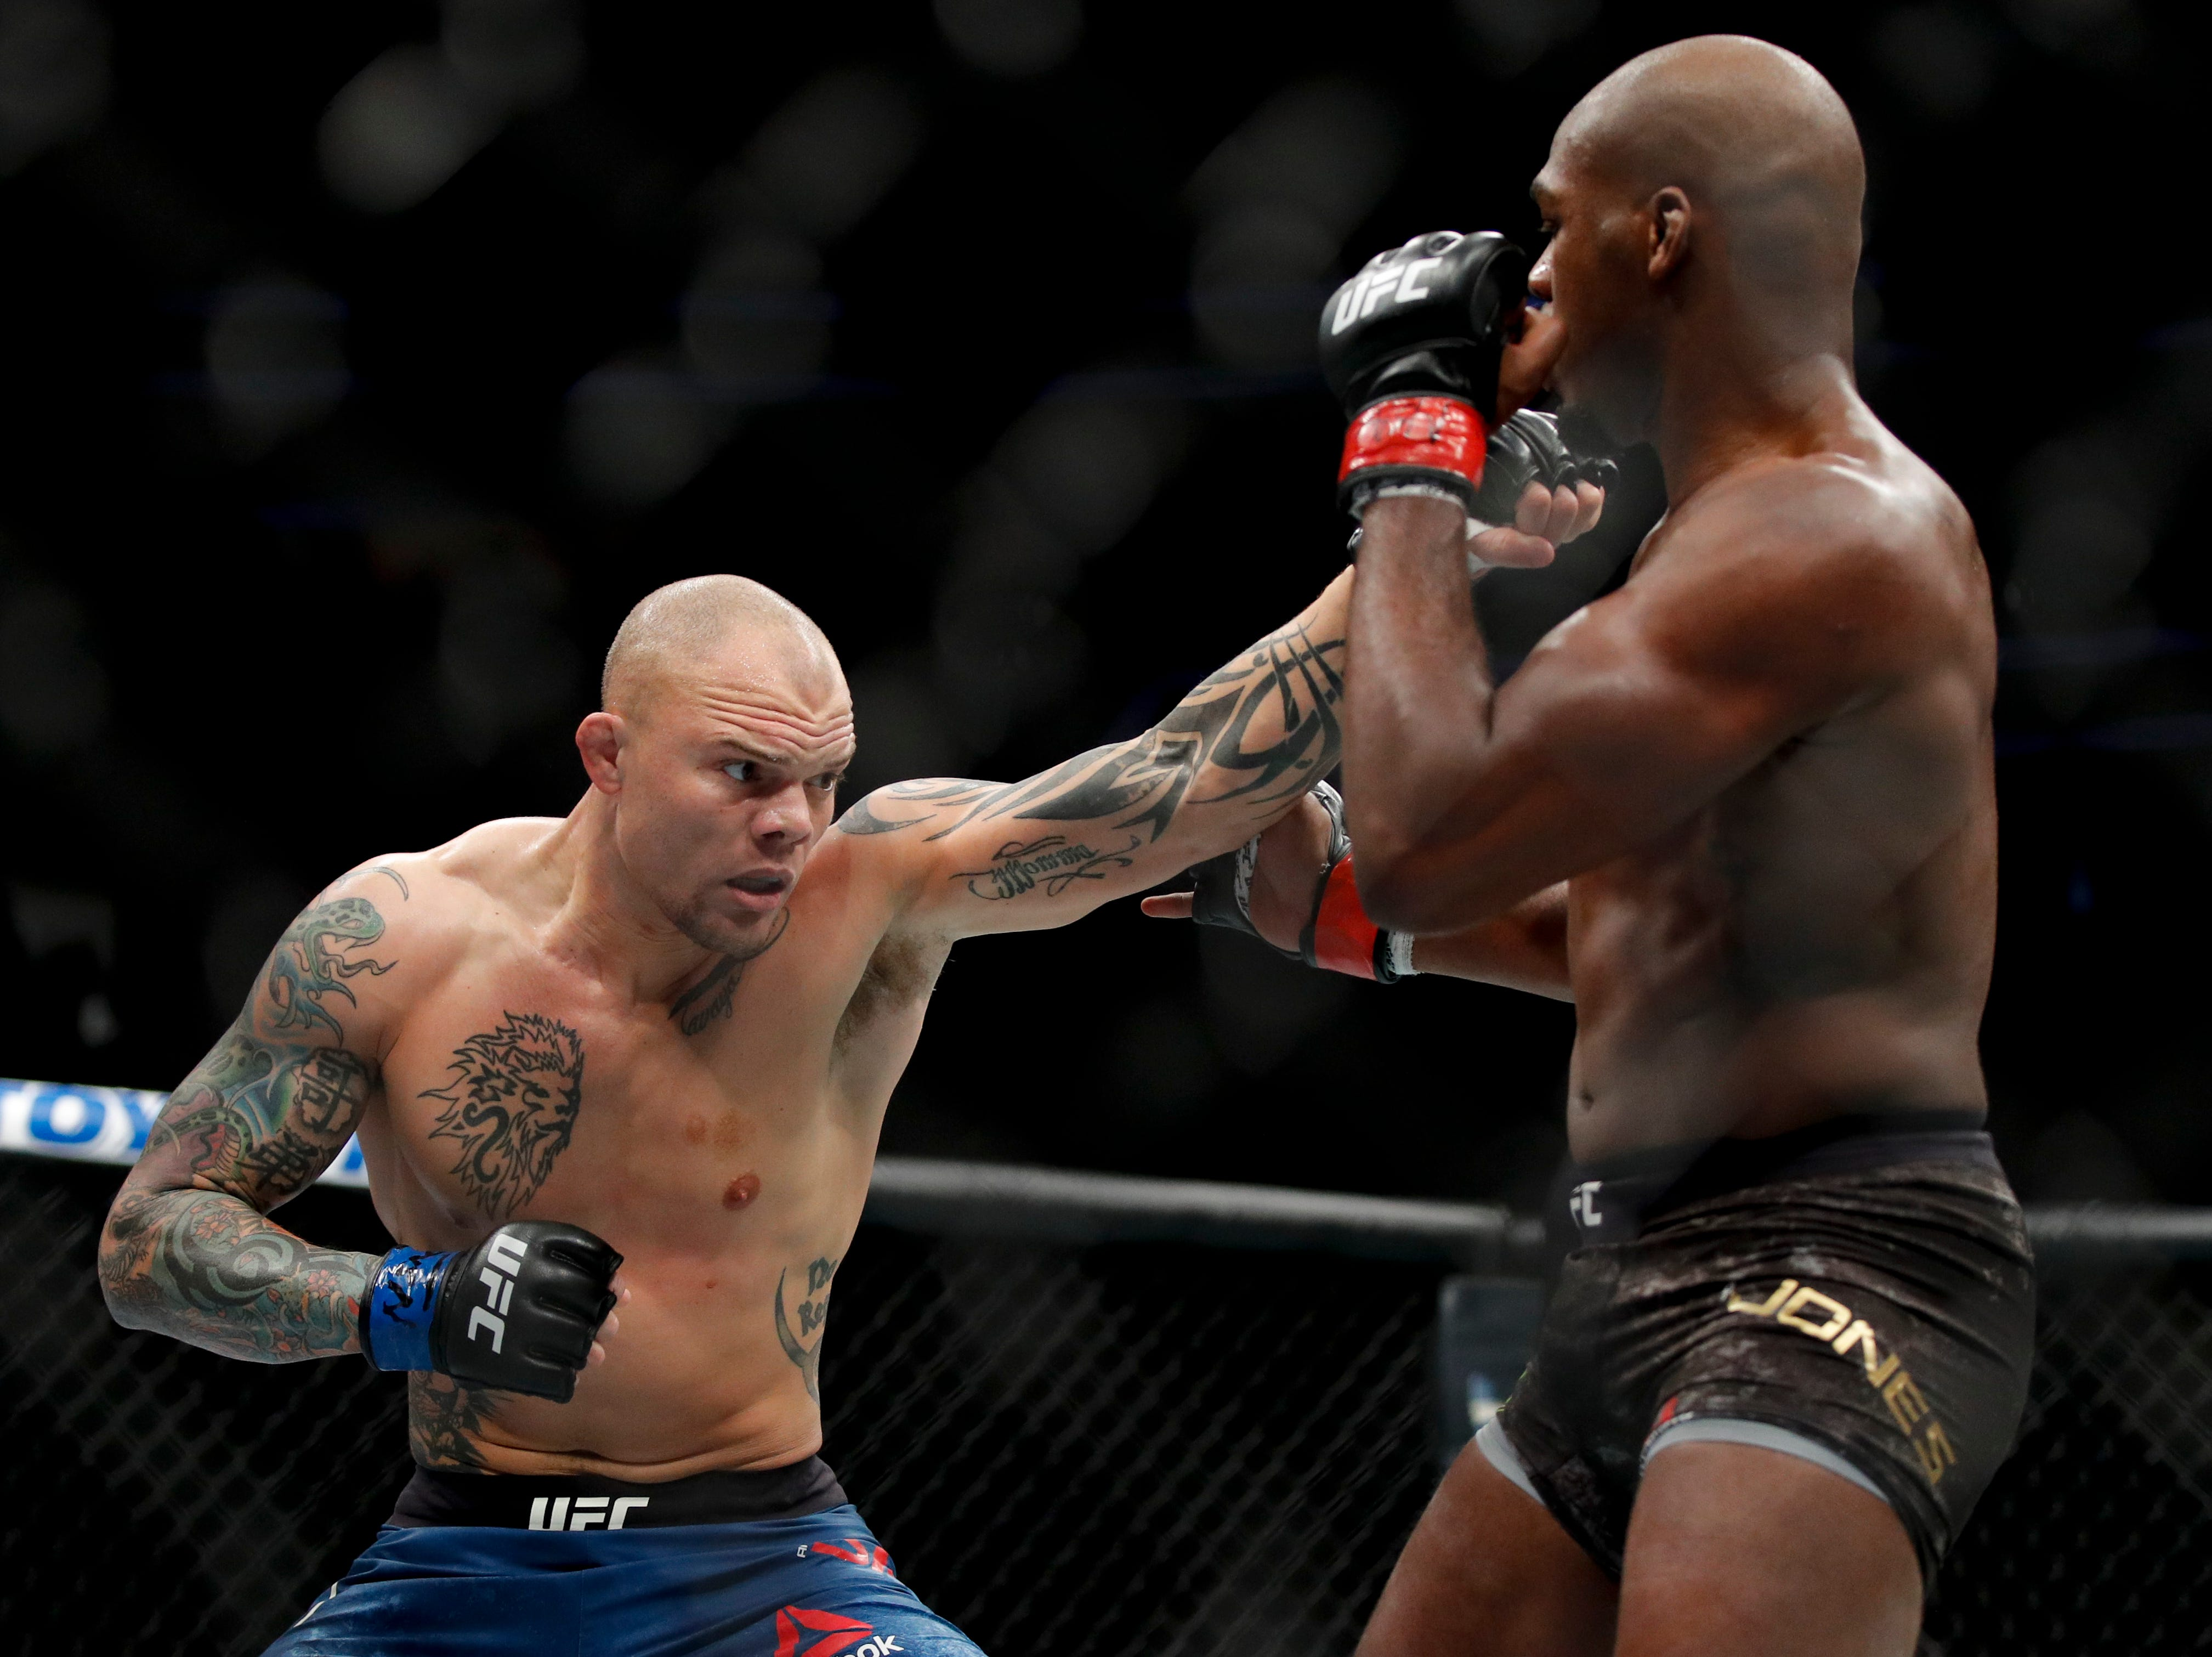 Jon Jones, right, blocks a punch from Anthony Smith during a light heavyweight mixed martial arts title bout at UFC 235, Saturday, March 2, 2019, in Las Vegas. (AP Photo/John Locher)